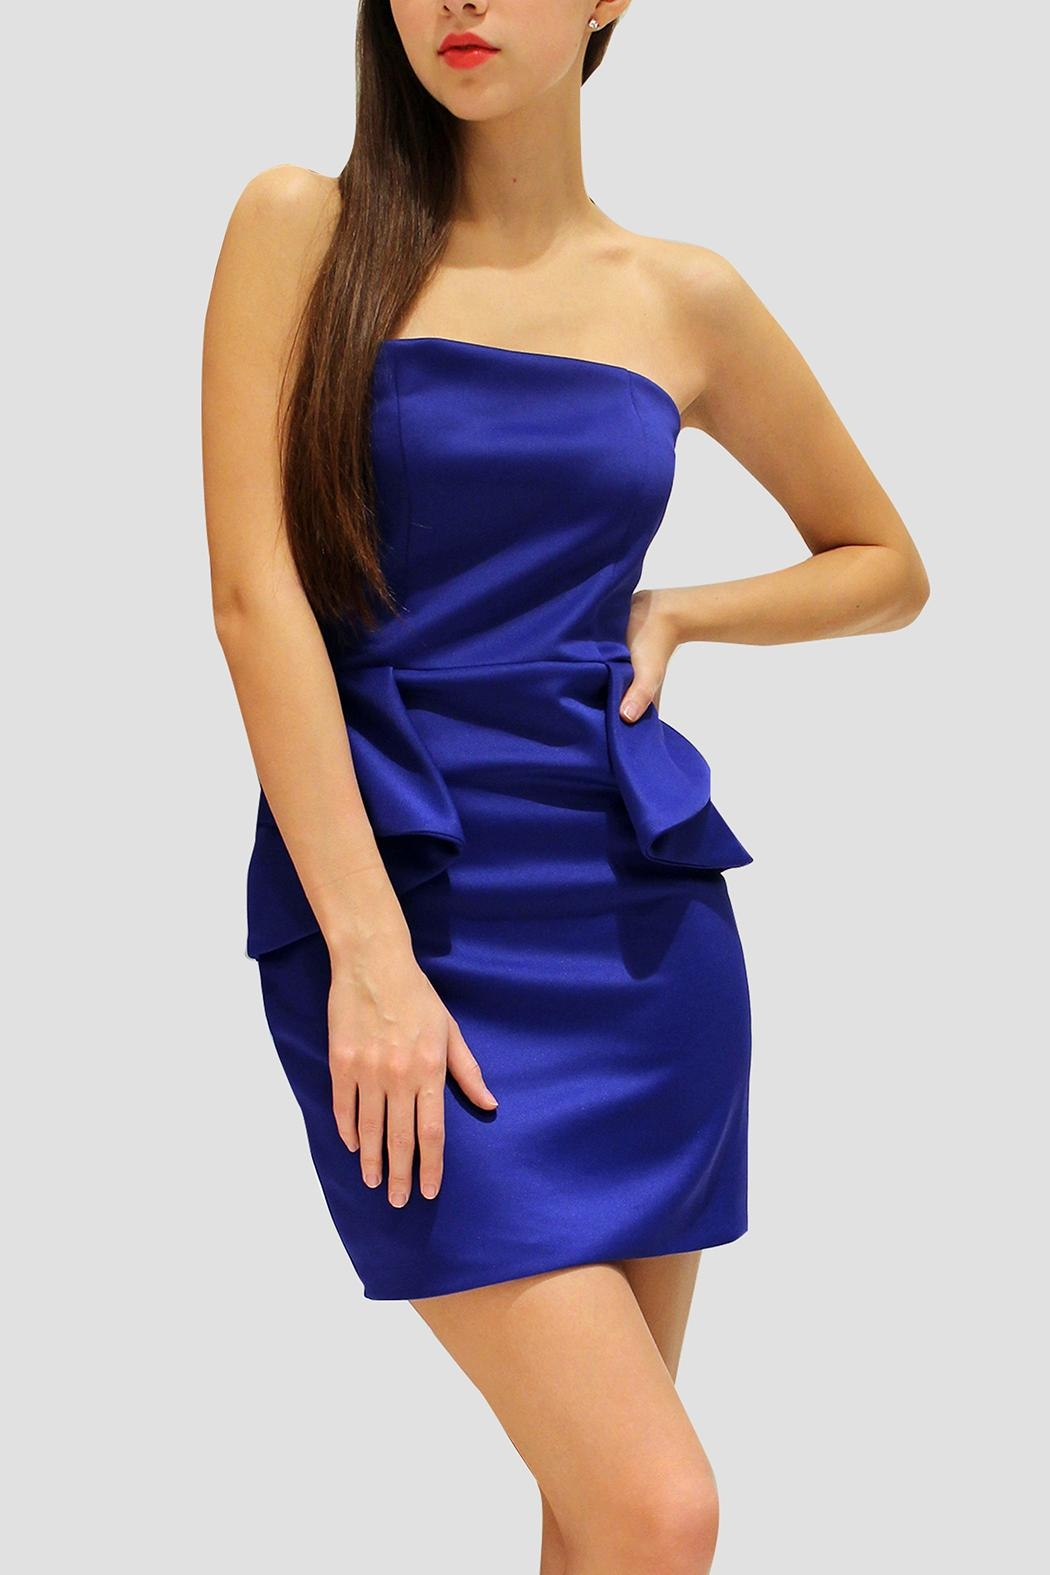 SoZu Strapless Peplum - Front Cropped Image